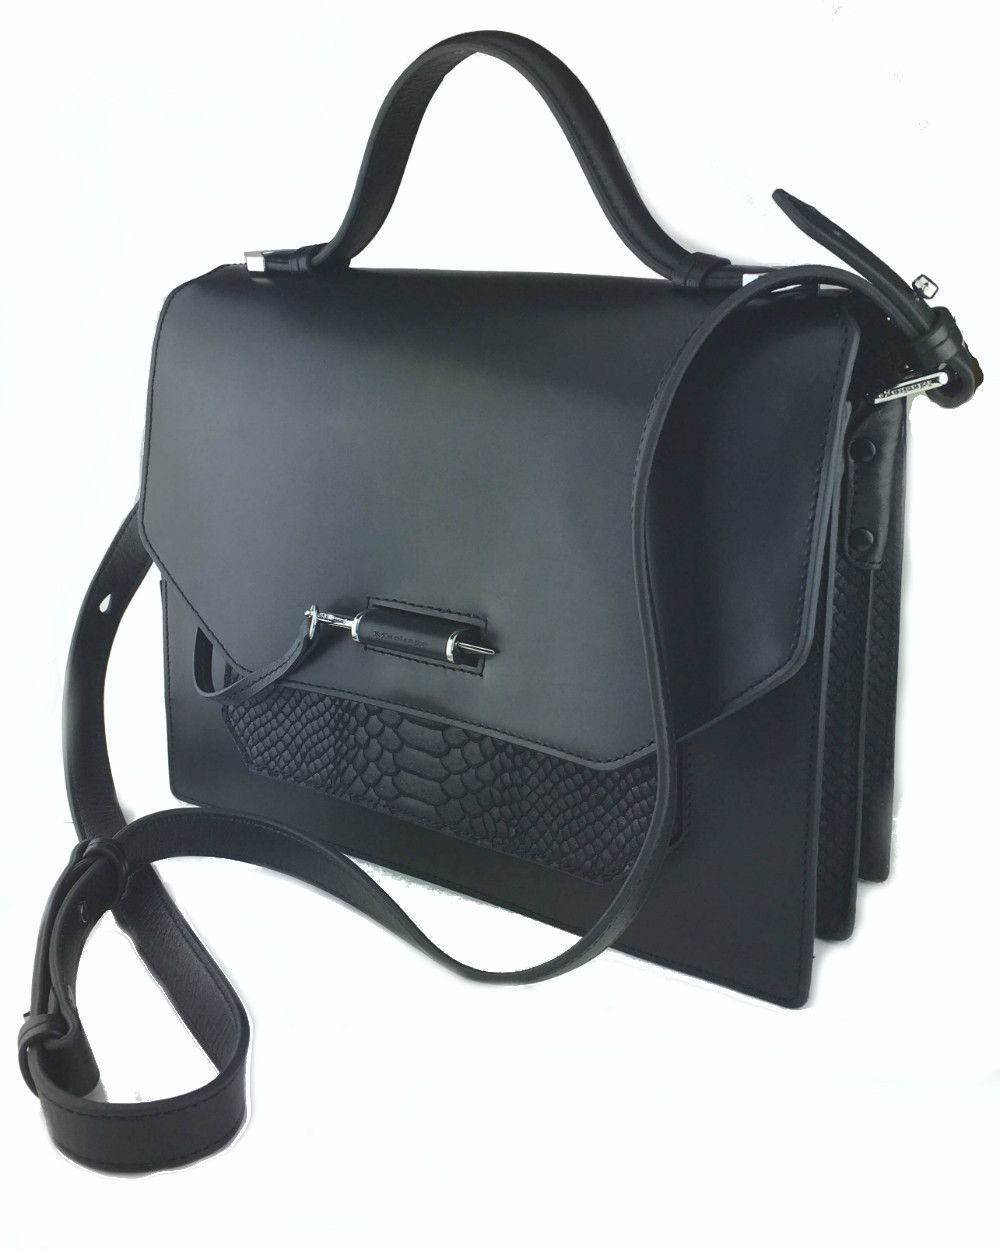 d440e08605 Single carry handle at top with metal hardware. Adjustable leather shoulder  strap at top. Accordion body with contrast croc-embossed suede panels